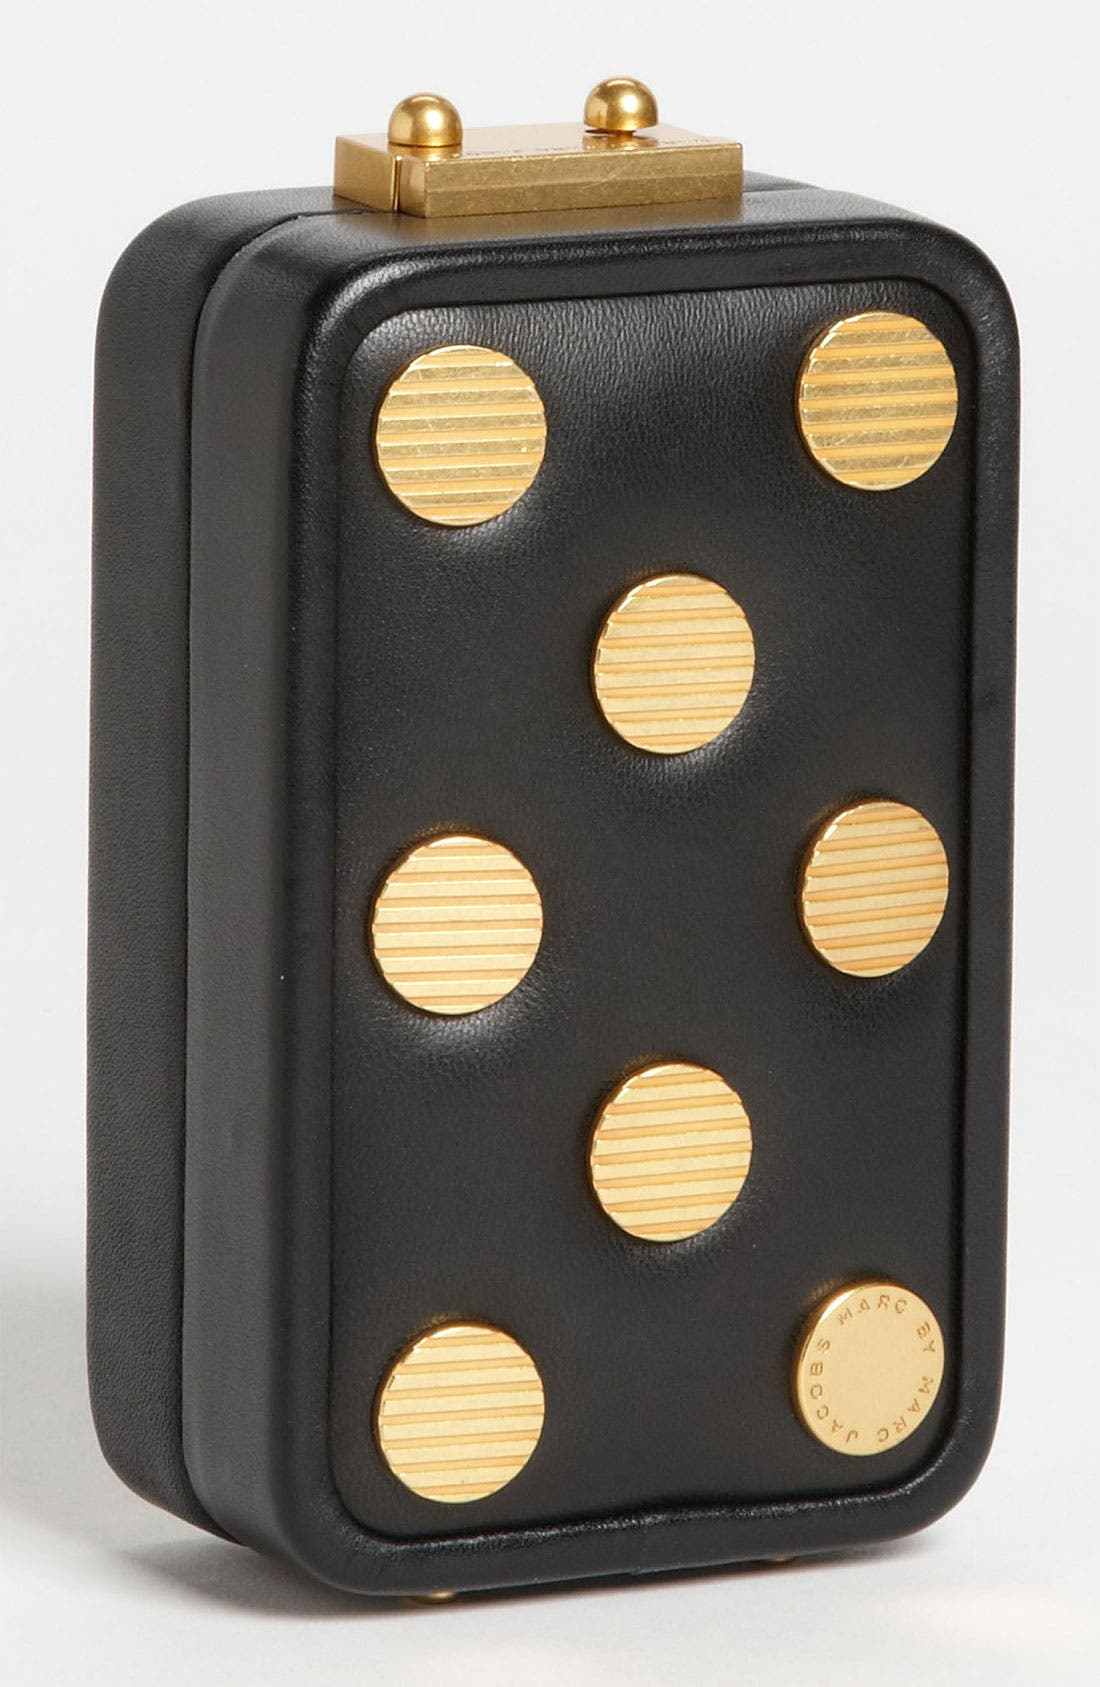 Main Image - MARC BY MARC JACOBS 'Phone in a Box - Dots' Phone Clutch